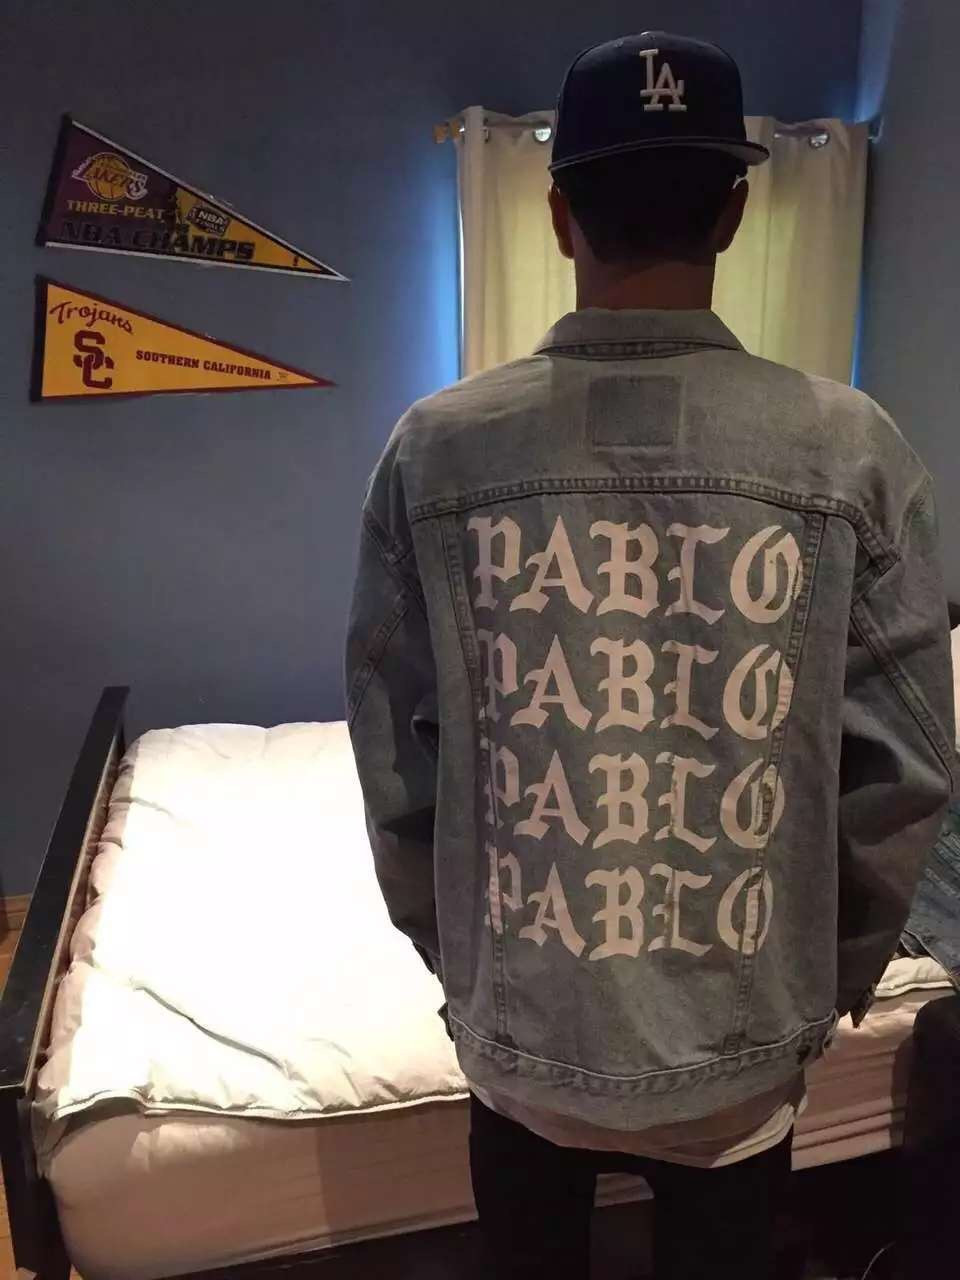 HTB1OqTcNXXXXXXLXFXXq6xXFXXXF - I Feel Like Pablo Denim Jacket Season 3 Kanye West Pablo Jeans Jacket PTC 03